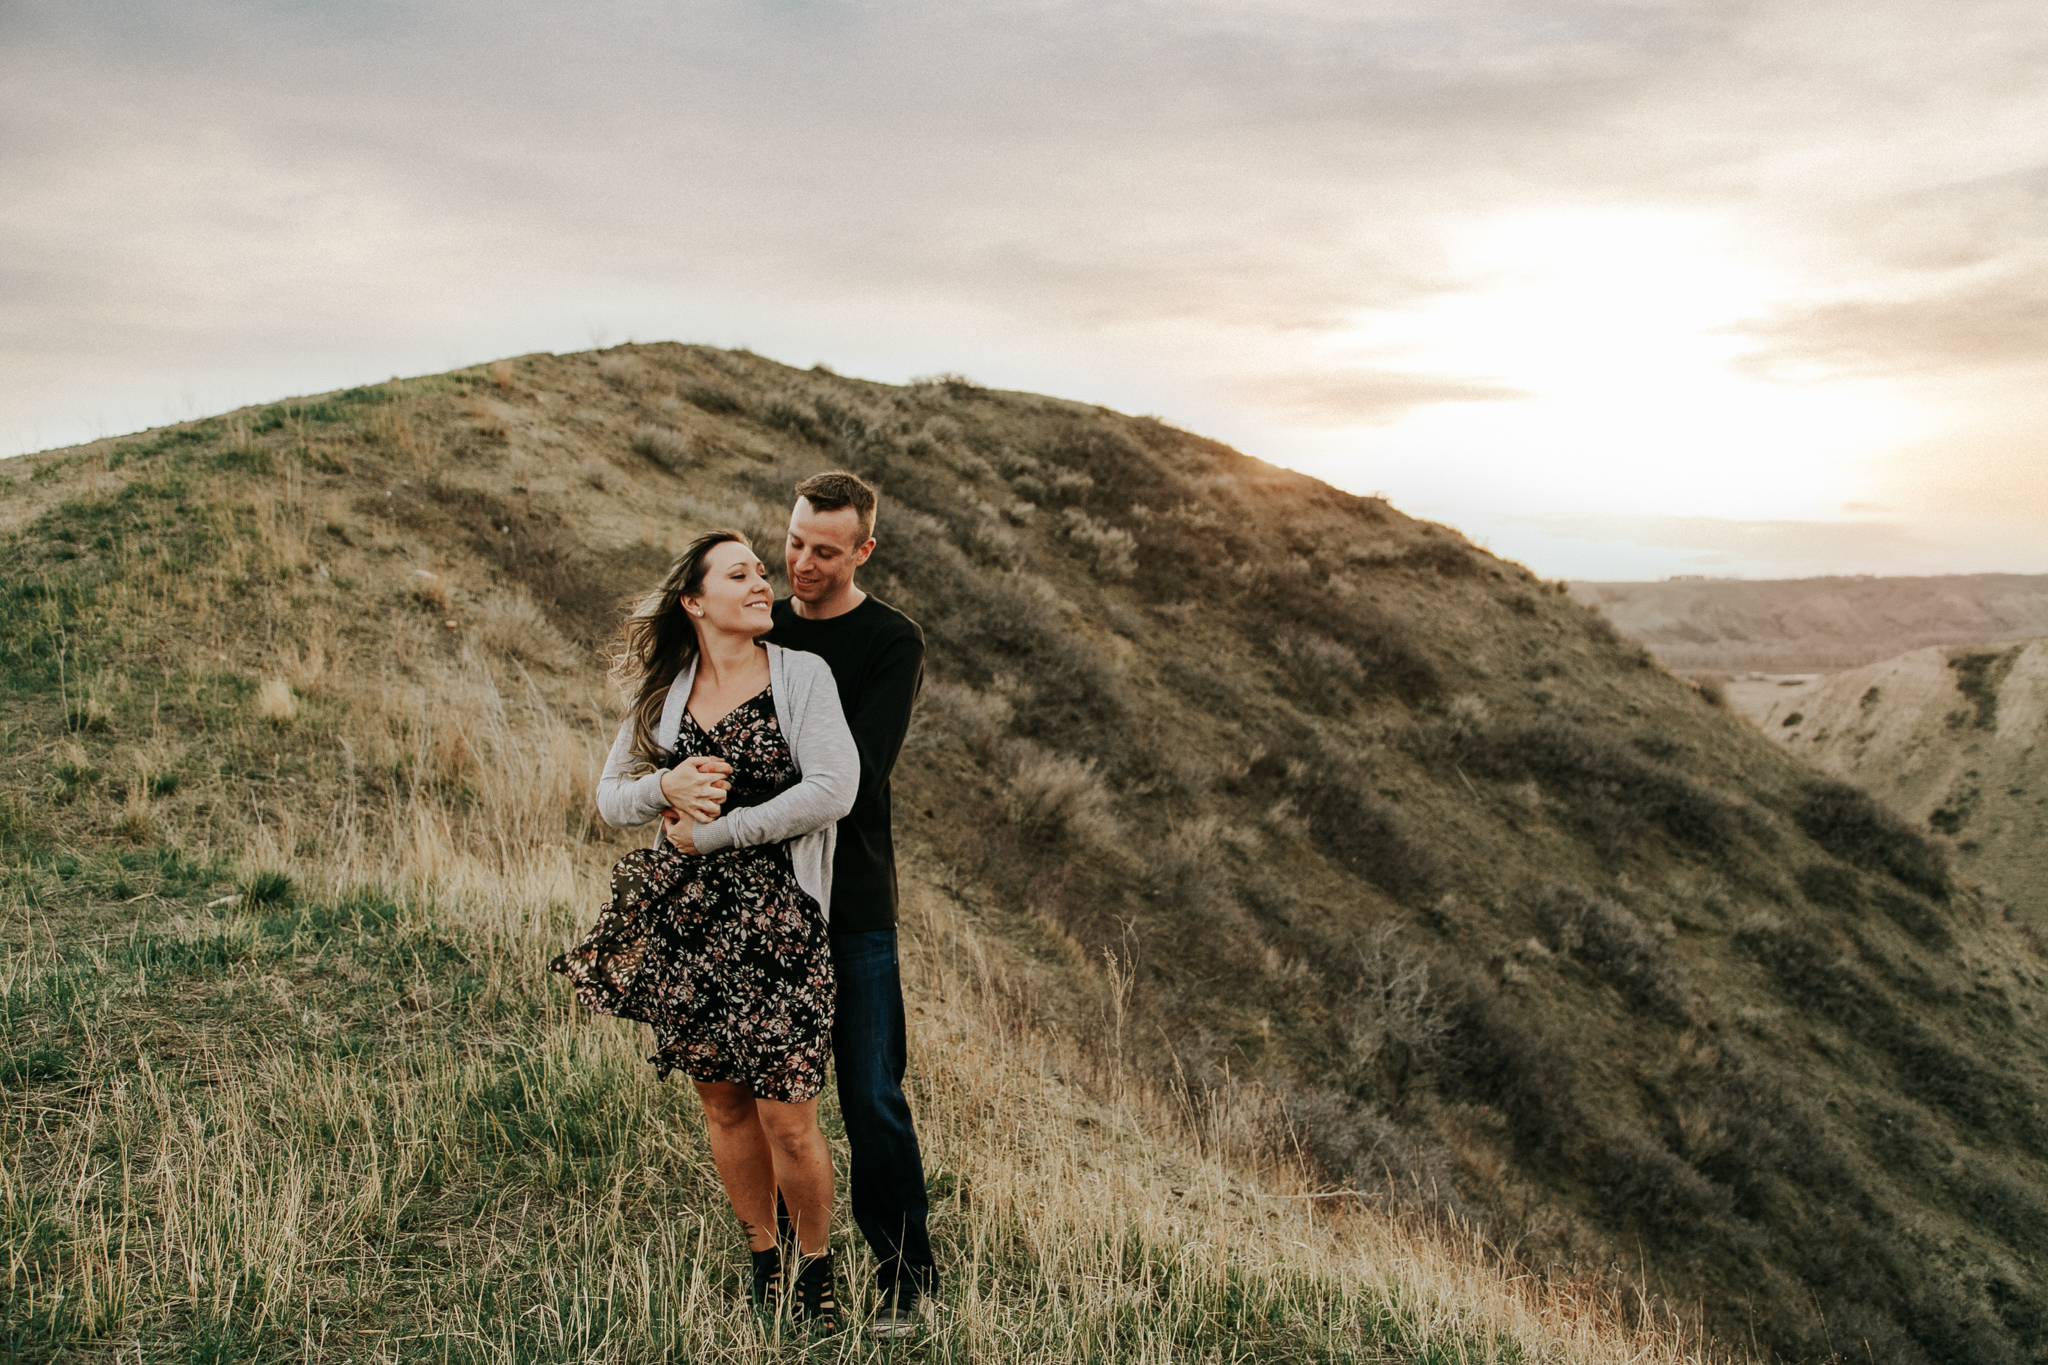 lethbridge-photographer-love-and-be-loved-photography-jessica-john-engagement-picture-image-photo-17.jpg